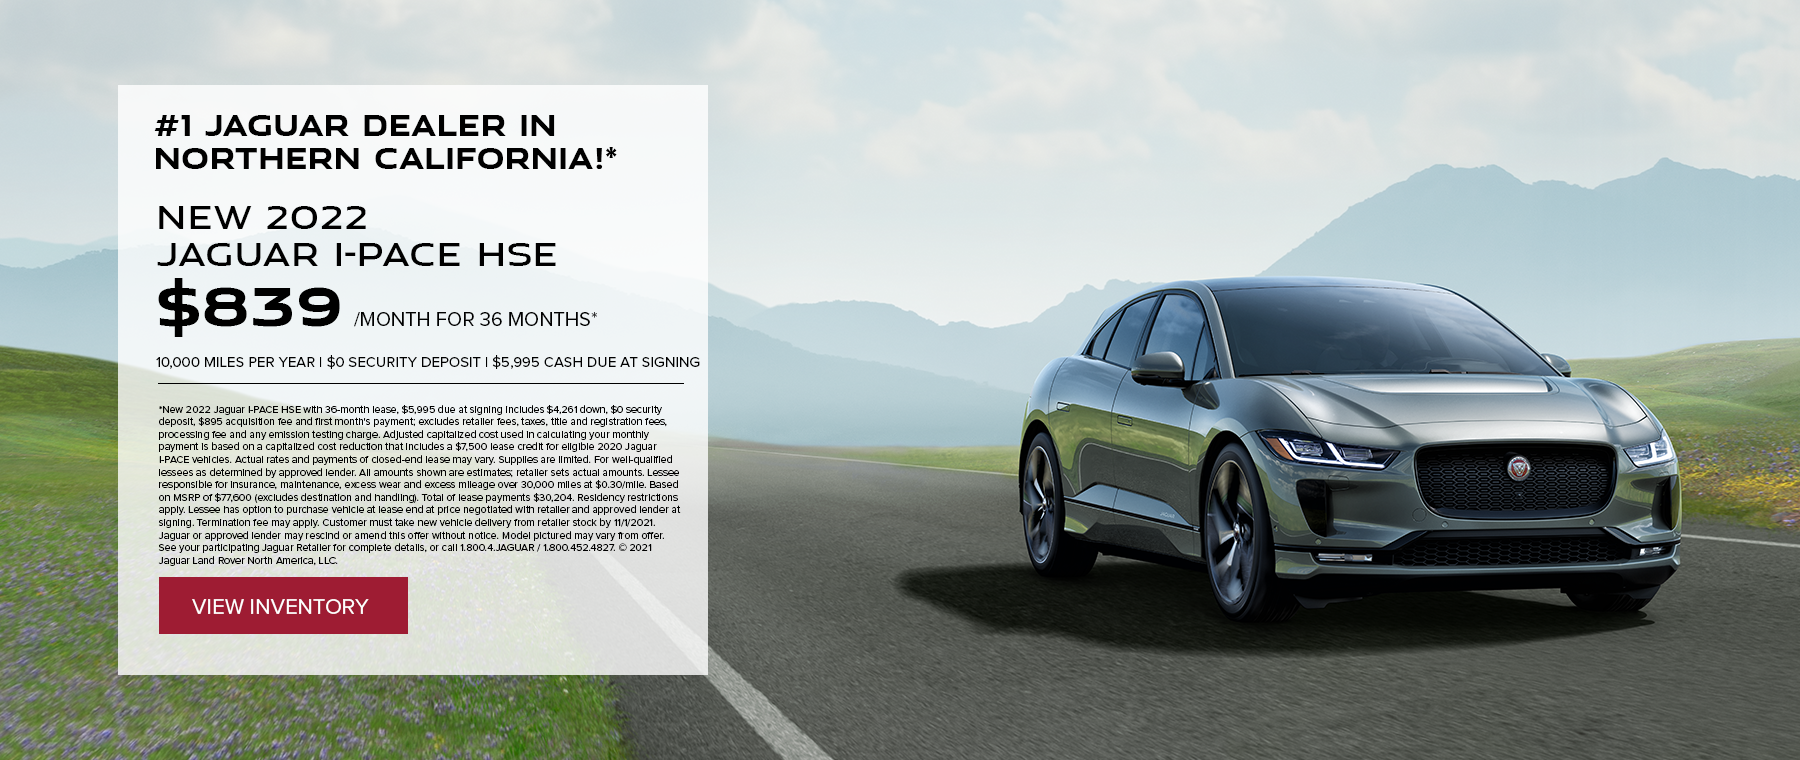 NEW 2022 JAGUAR I-PACE HSE. $839 PER MONTH. 36 MONTH LEASE TERM. $5,995 CASH DUE AT SIGNING. $0 SECURITY DEPOSIT. 10,000 MILES PER YEAR. EXCLUDES RETAILER FEES, TAXES, TITLE AND REGISTRATION FEES, PROCESSING FEE AND ANY EMISSION TESTING CHARGE. OFFER ENDS 11/1/2021.